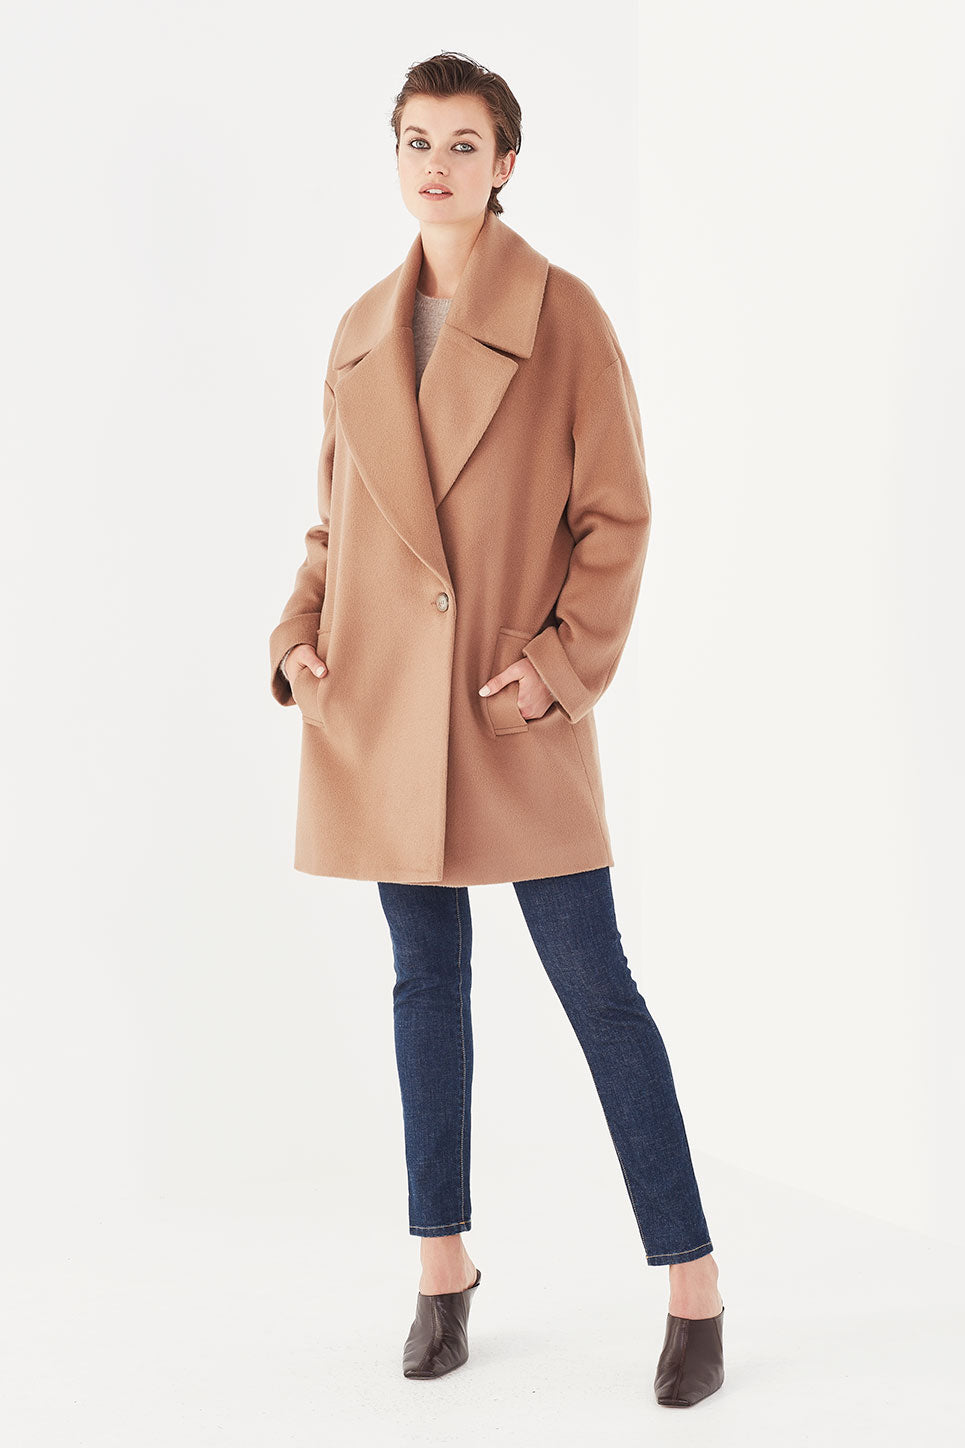 The Finn Coat in Camel